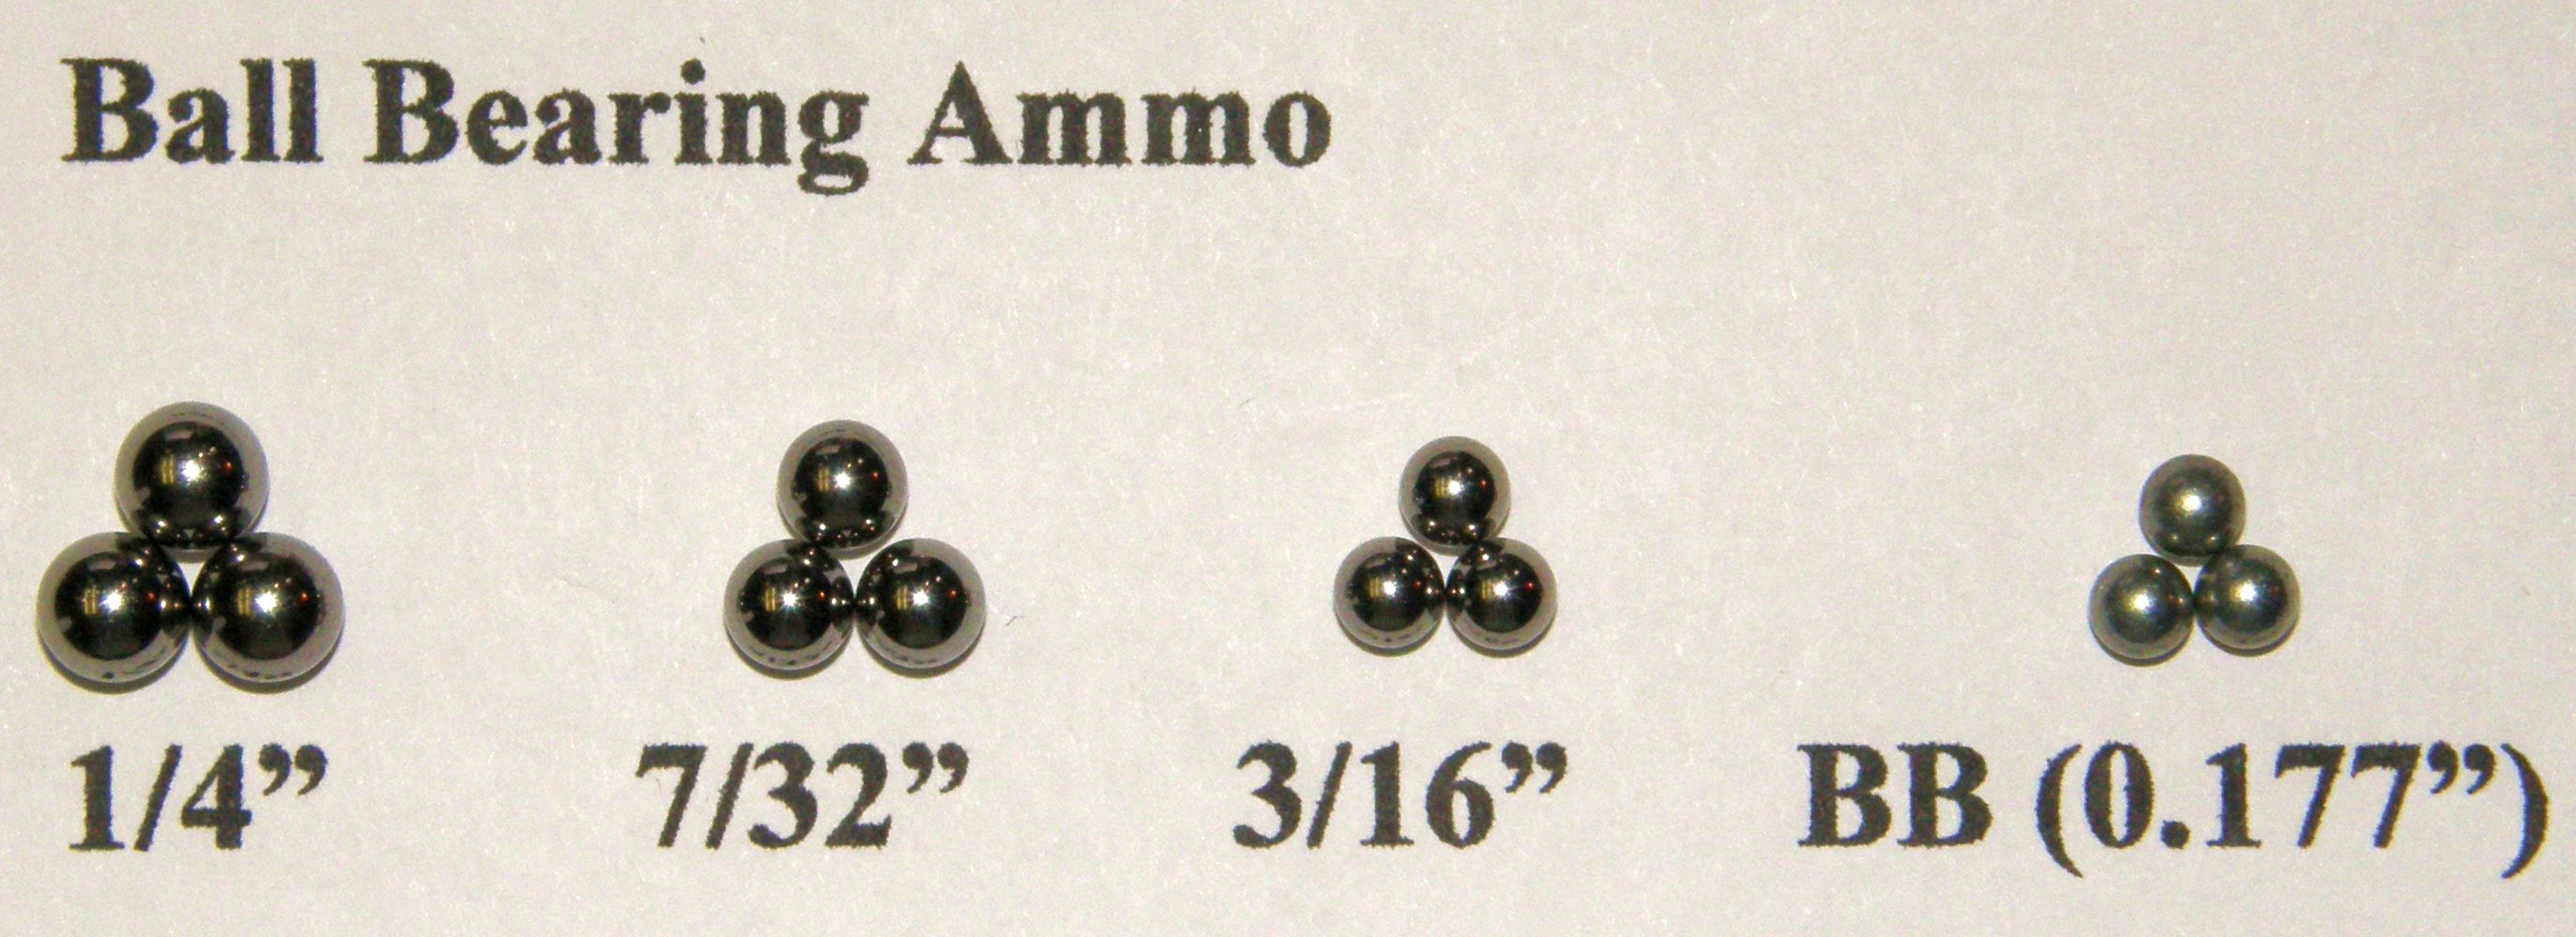 Ball Bearing Ammunition